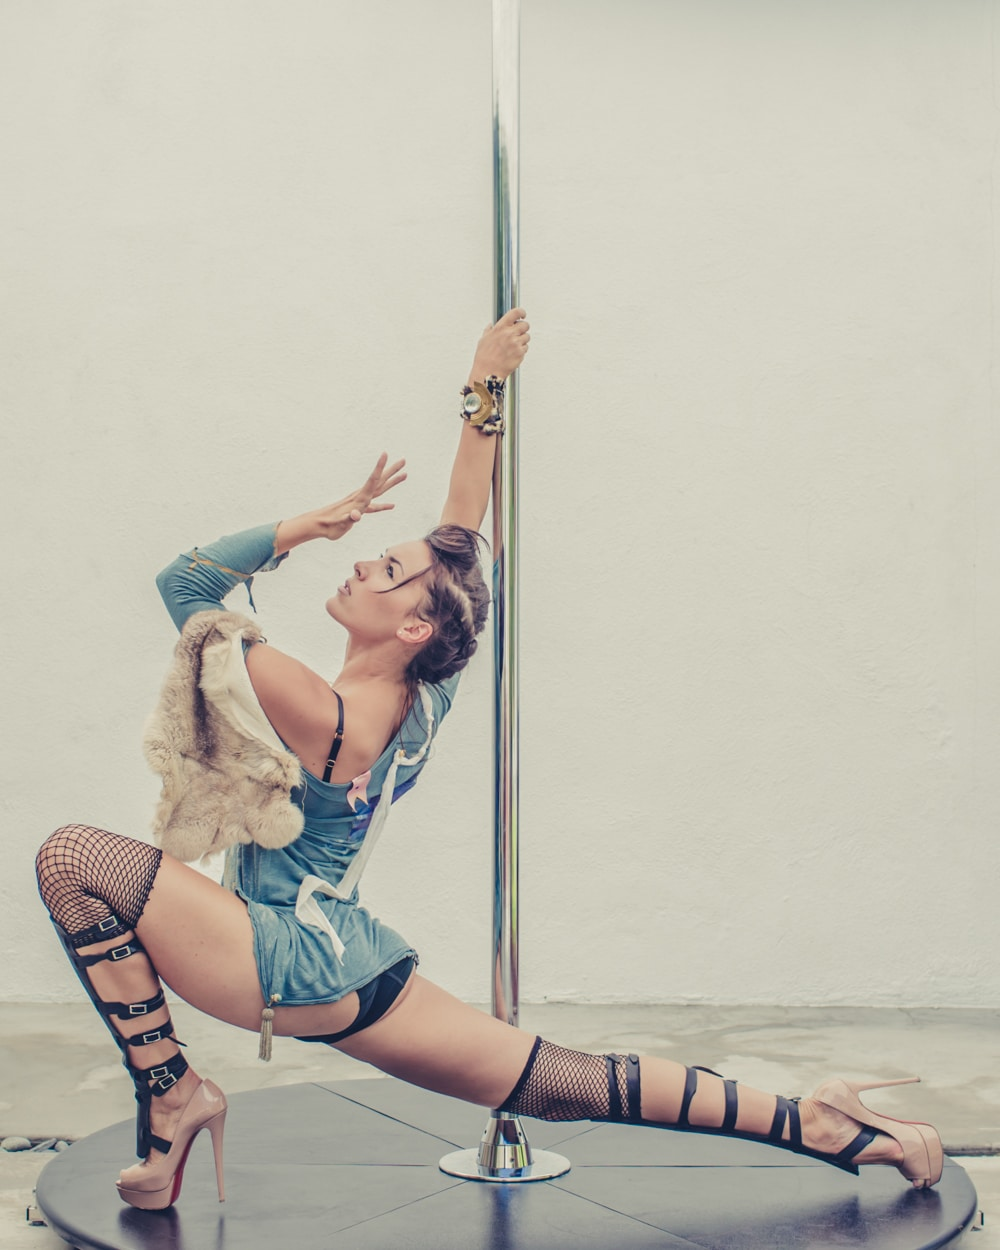 pole_dance_and_contemporary_fashion_converge_by_beylerian-10